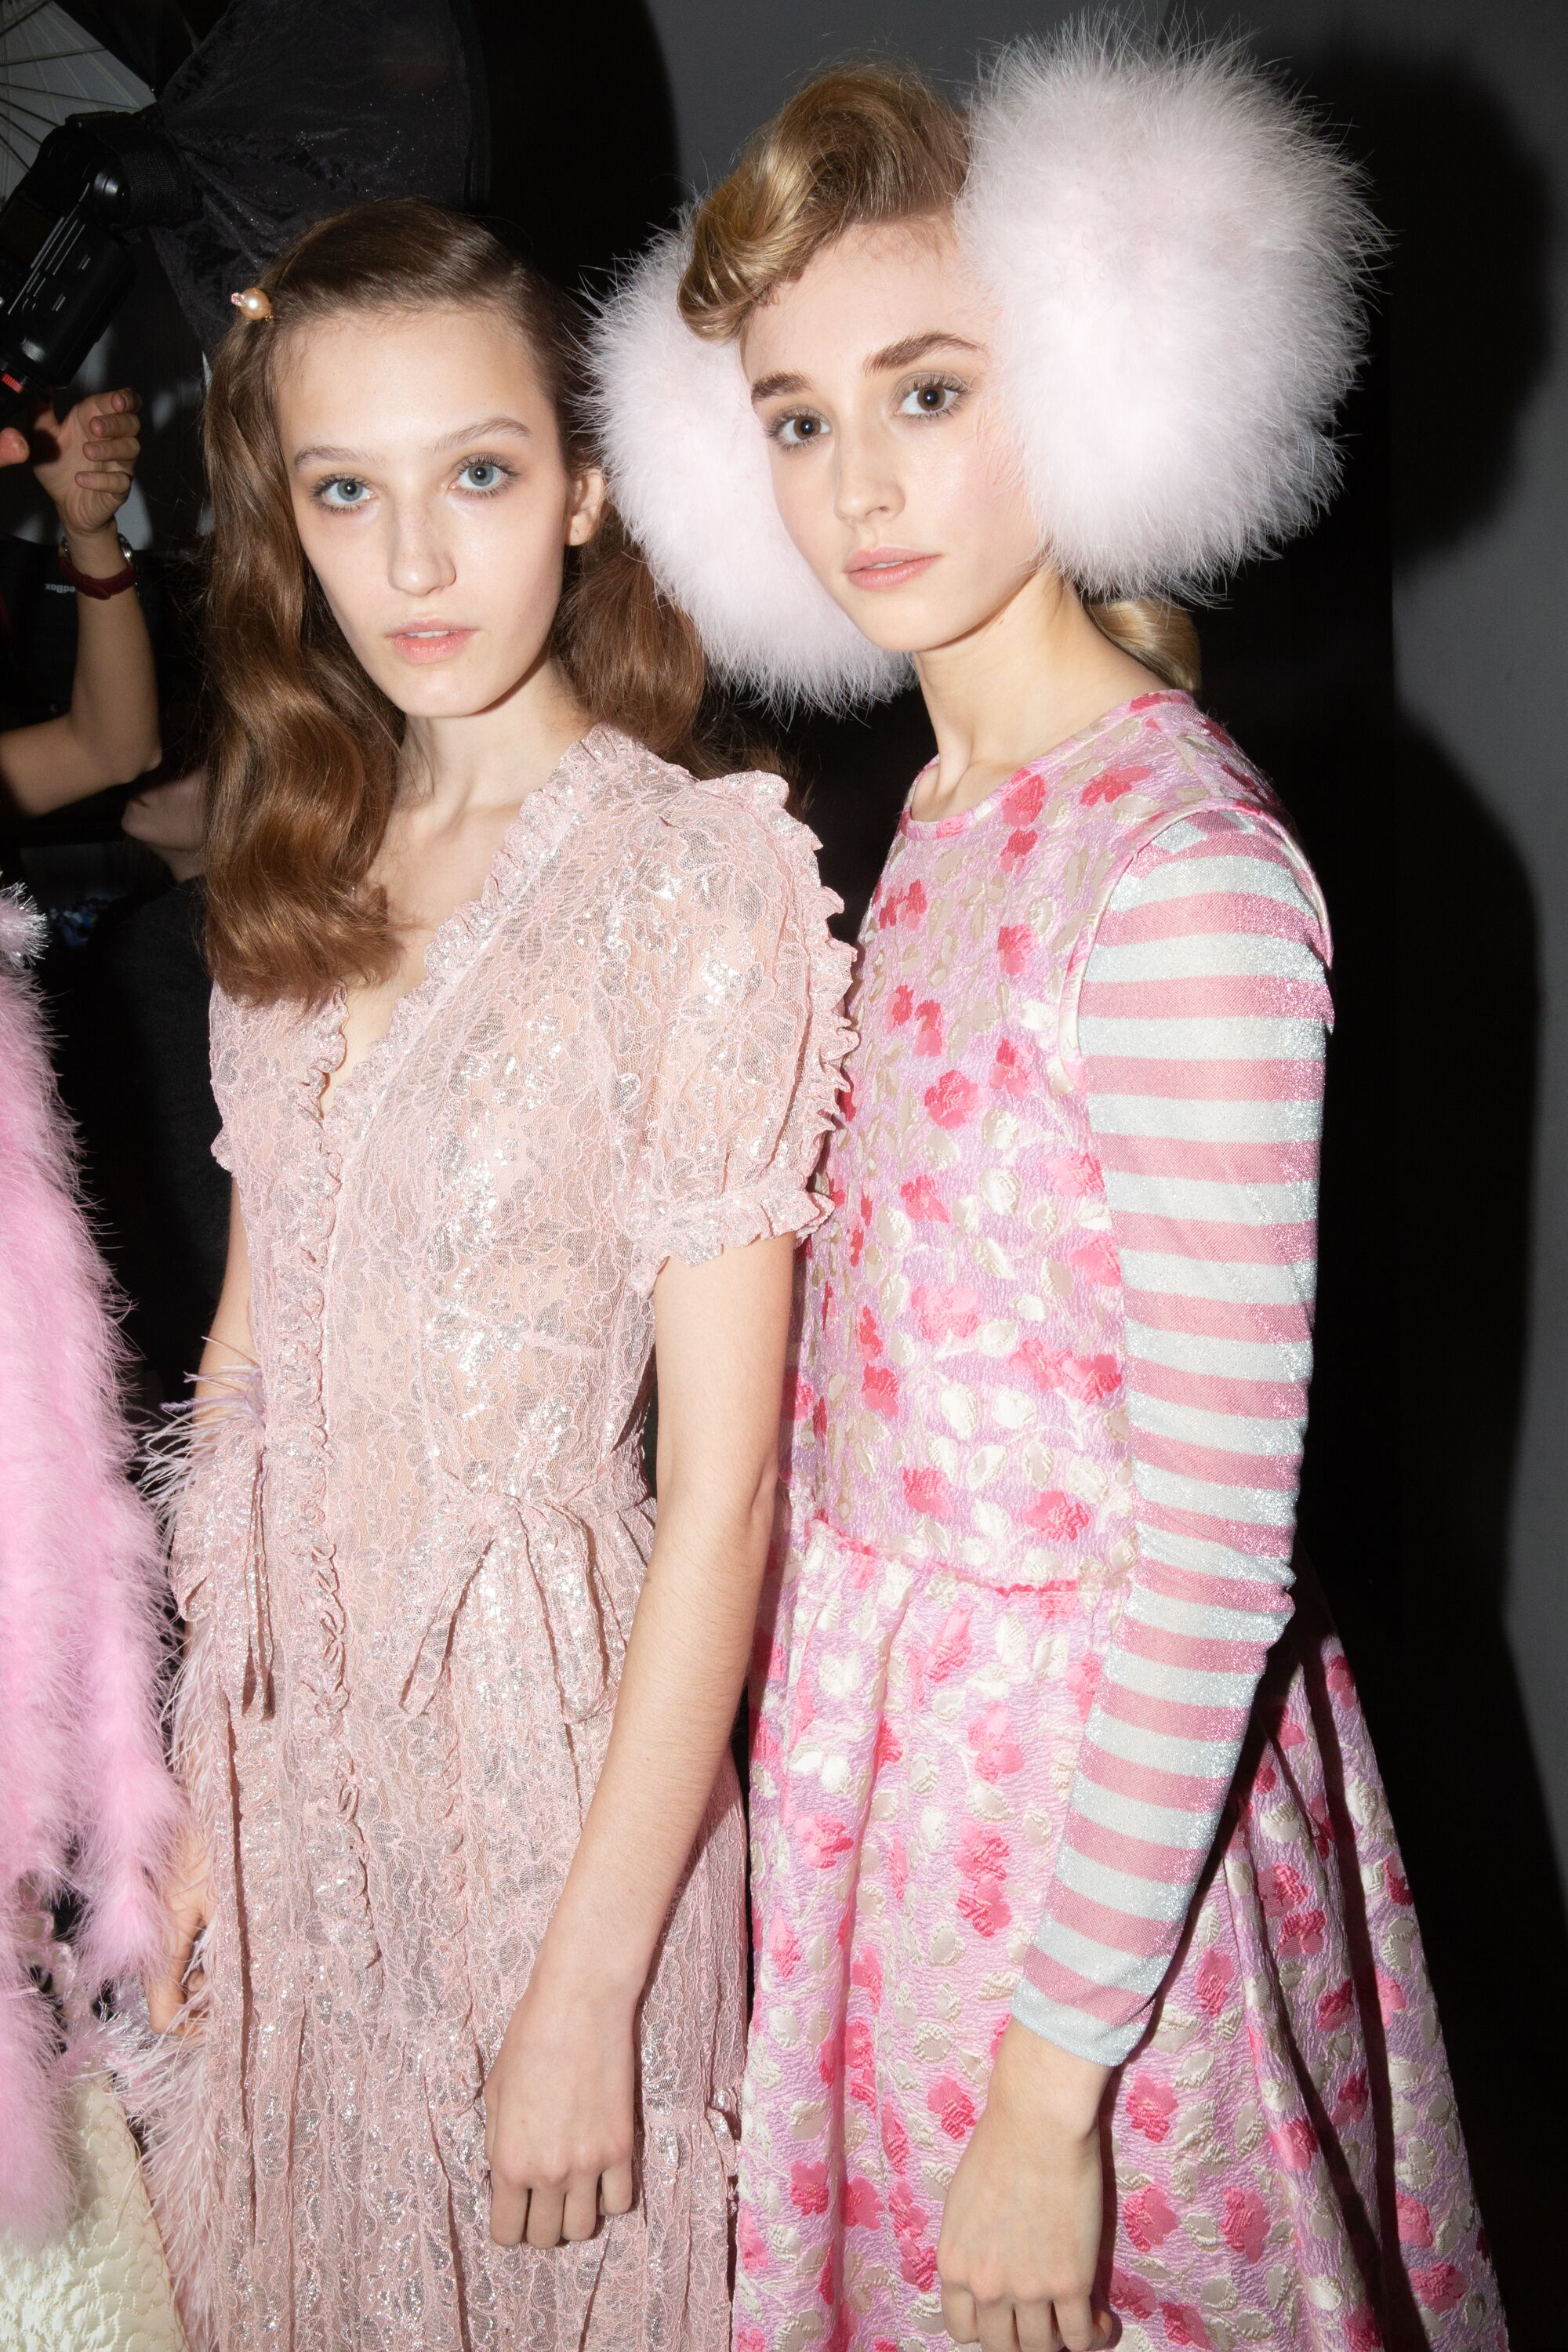 Ryan Lowe pink dress fluffy earmuffs AW19